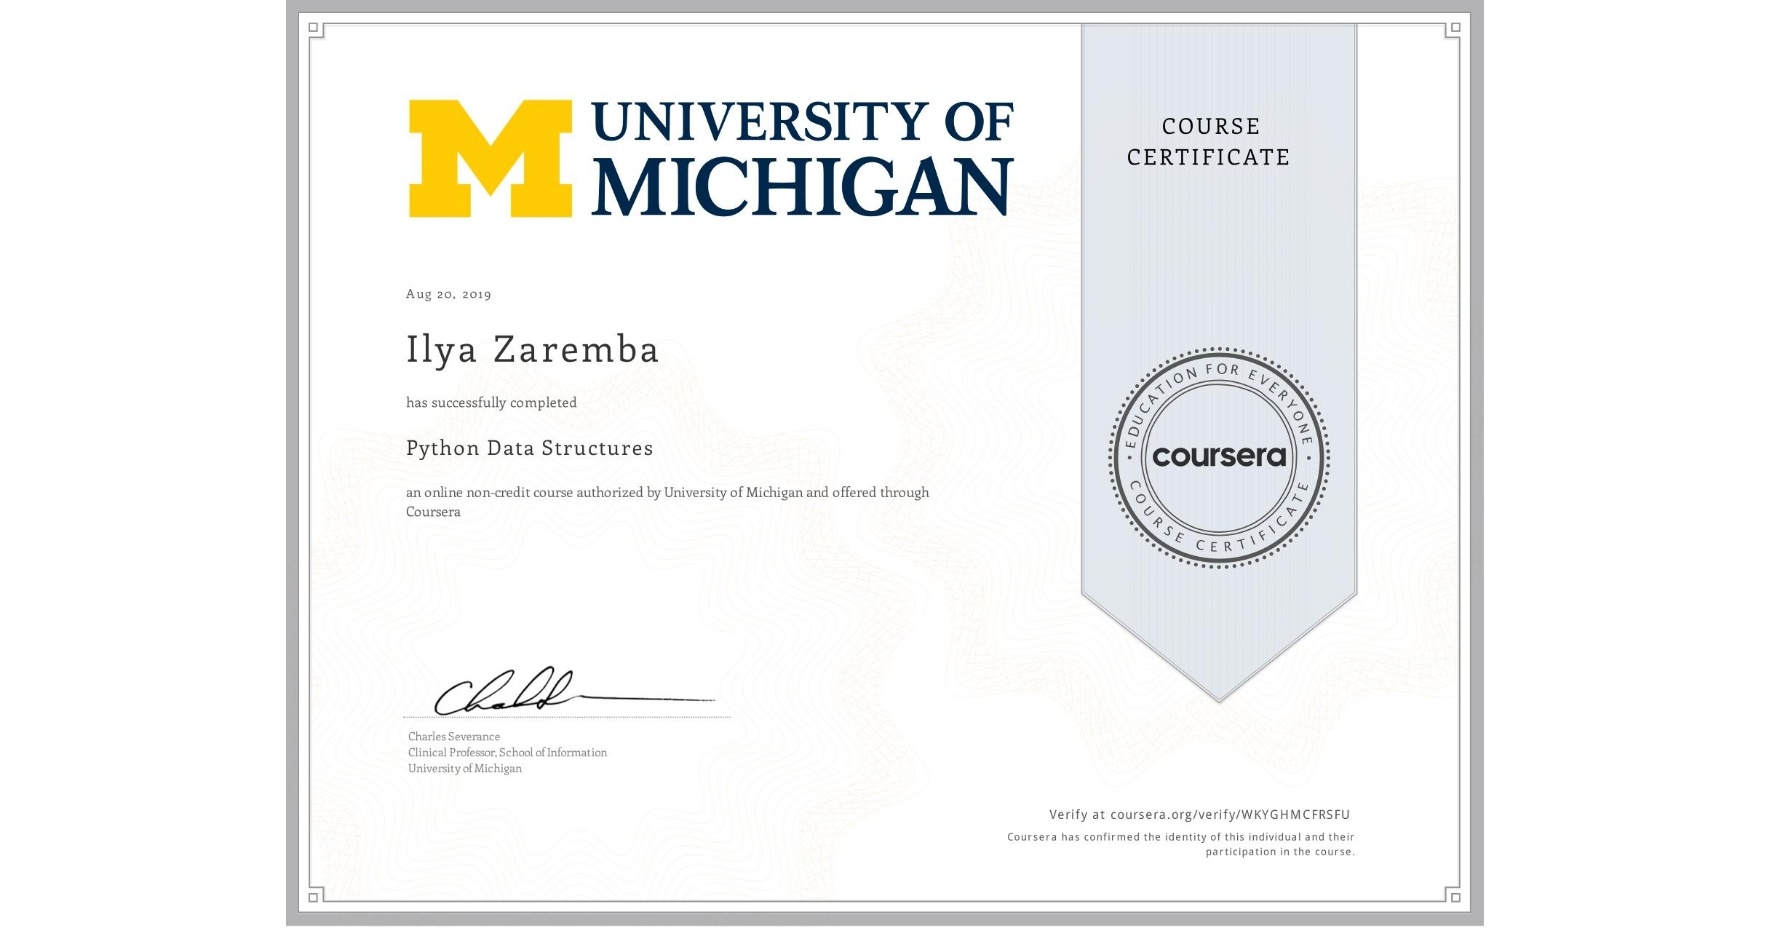 View certificate for Ilya Zaremba, Python Data Structures, an online non-credit course authorized by University of Michigan and offered through Coursera